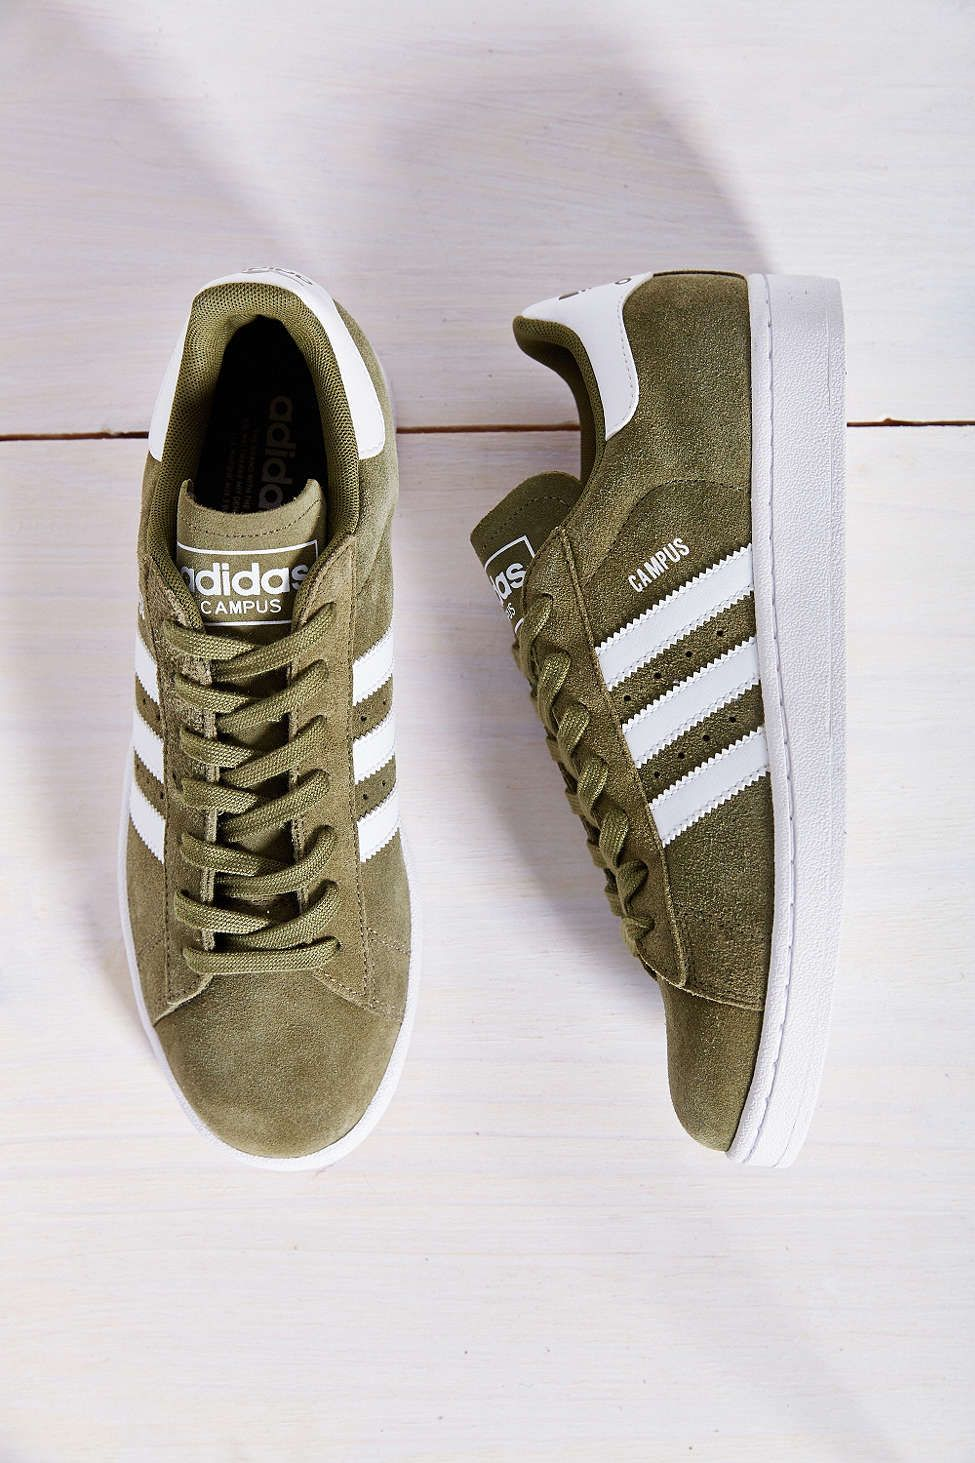 Do Originals 2 Campus Sneaker Suede Adidas Urban I Outfitters70 v8mNnw0